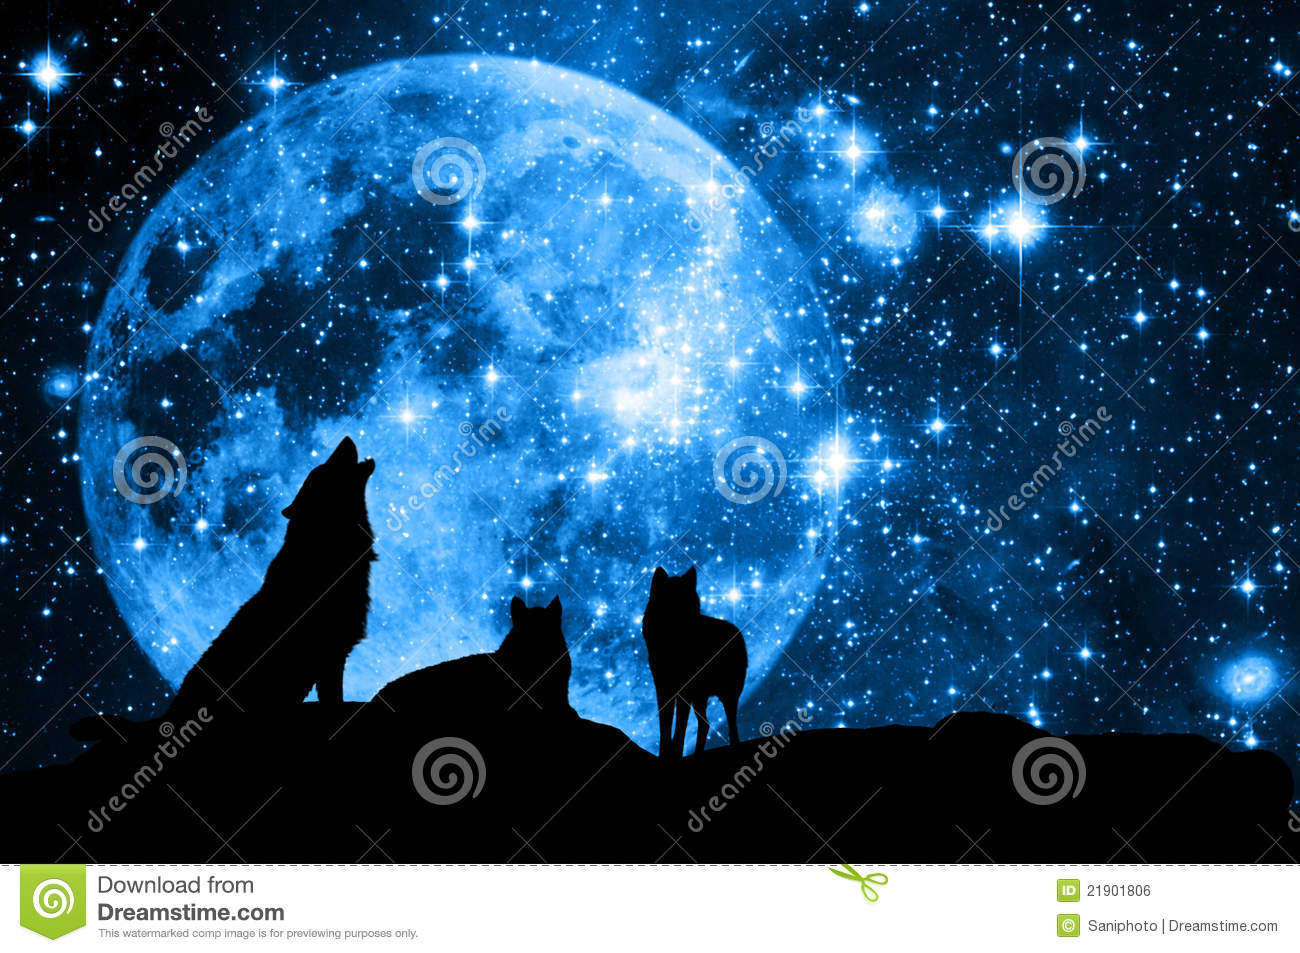 Wolves pack in silhouette against a blue starred sky with full moon.